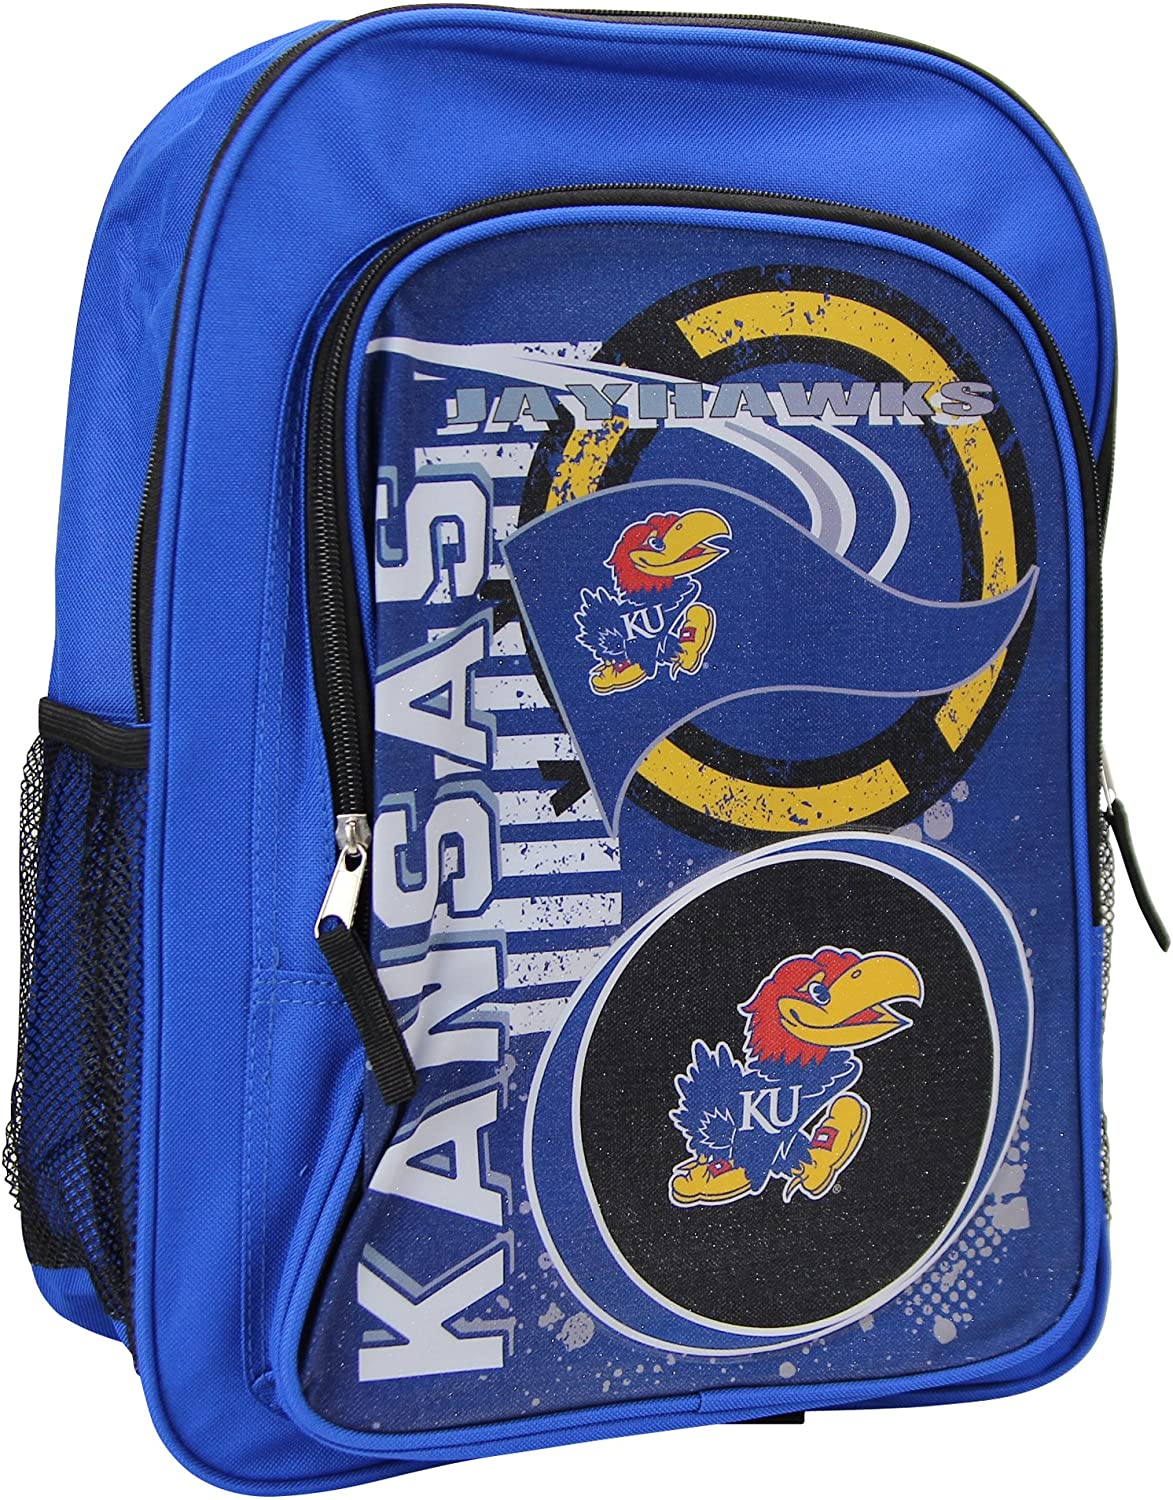 The Northwest Company Officially Licensed NCAA Accelerator Backpack, Multiple Colors, 16